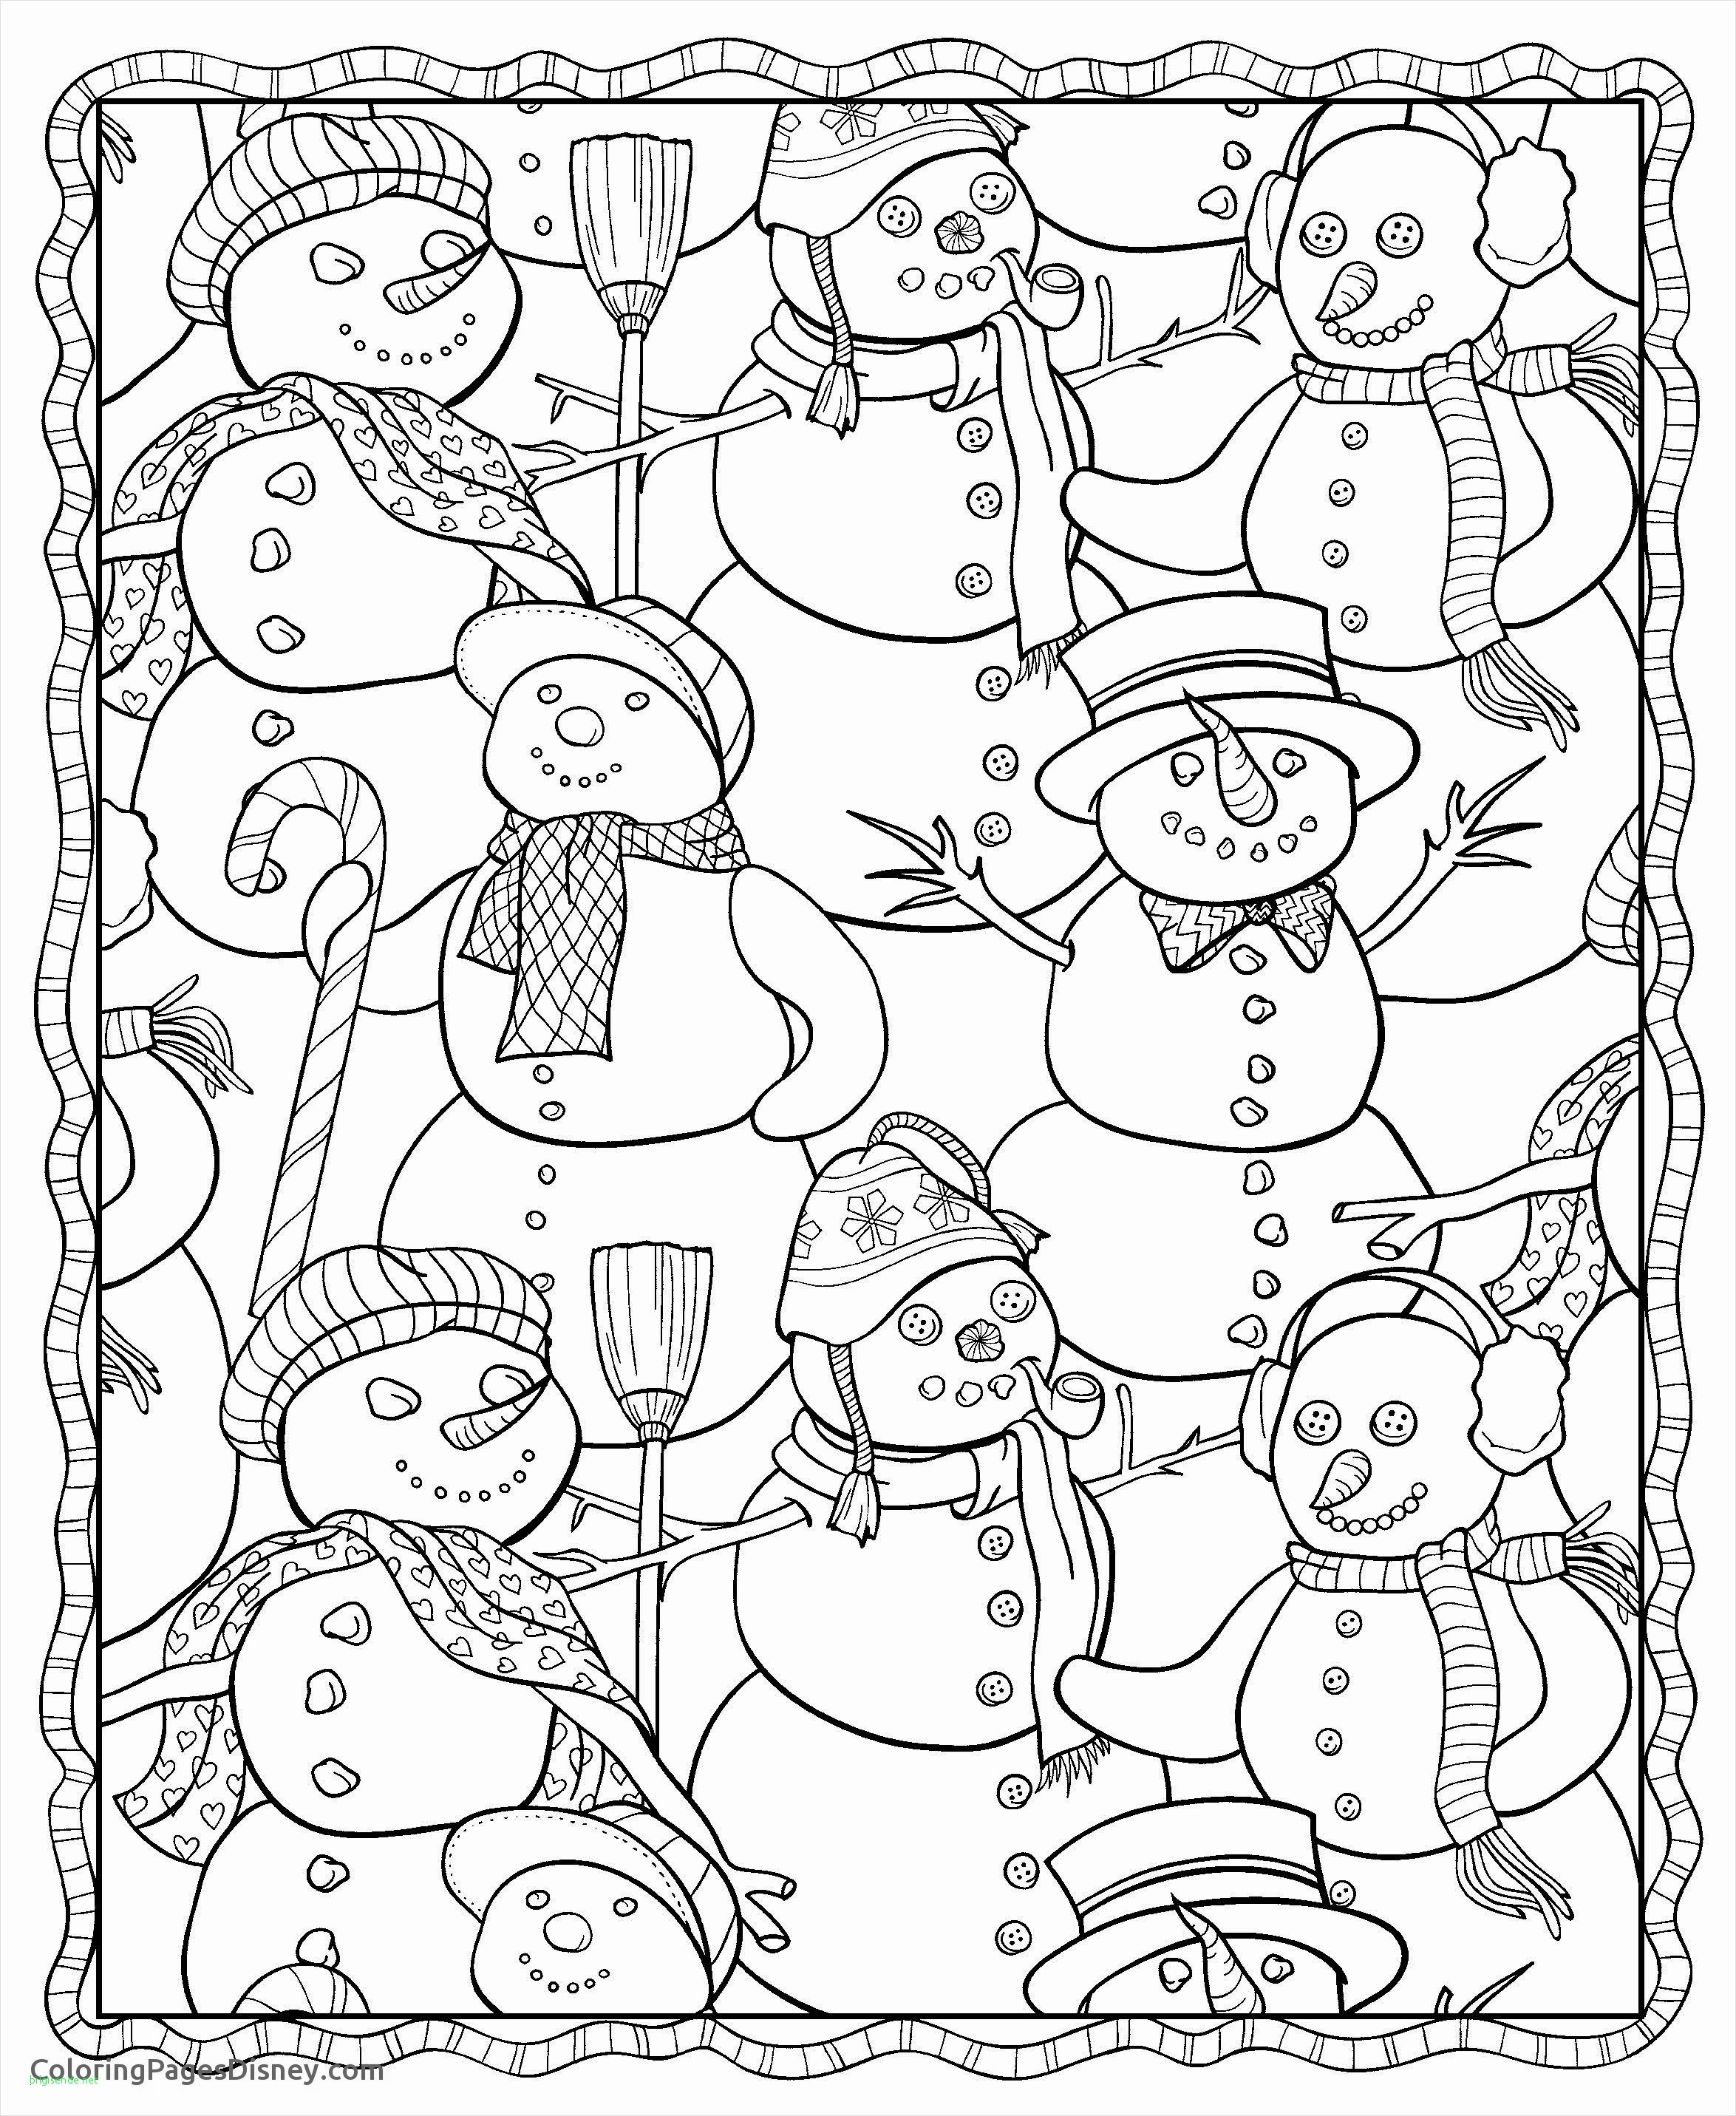 29 Disney Coloring Pages Pocahontas Gallery Coloring Sheets